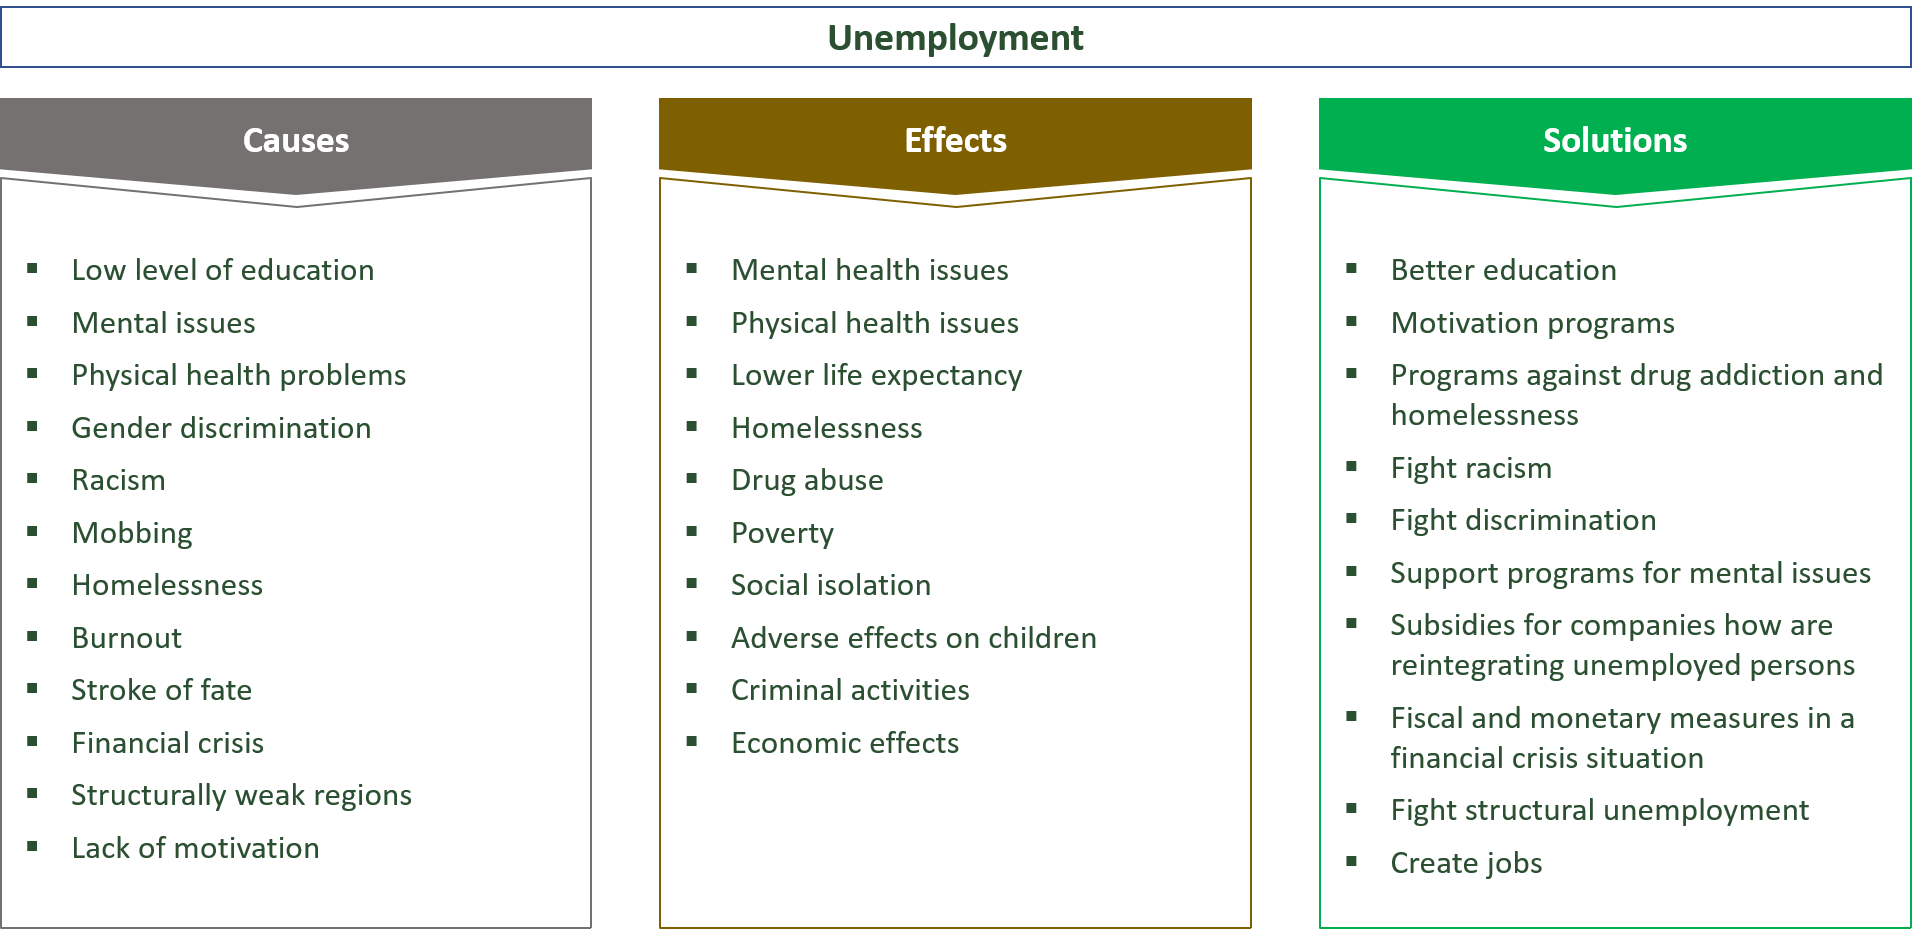 causes, effects and solutions regarding unemployment